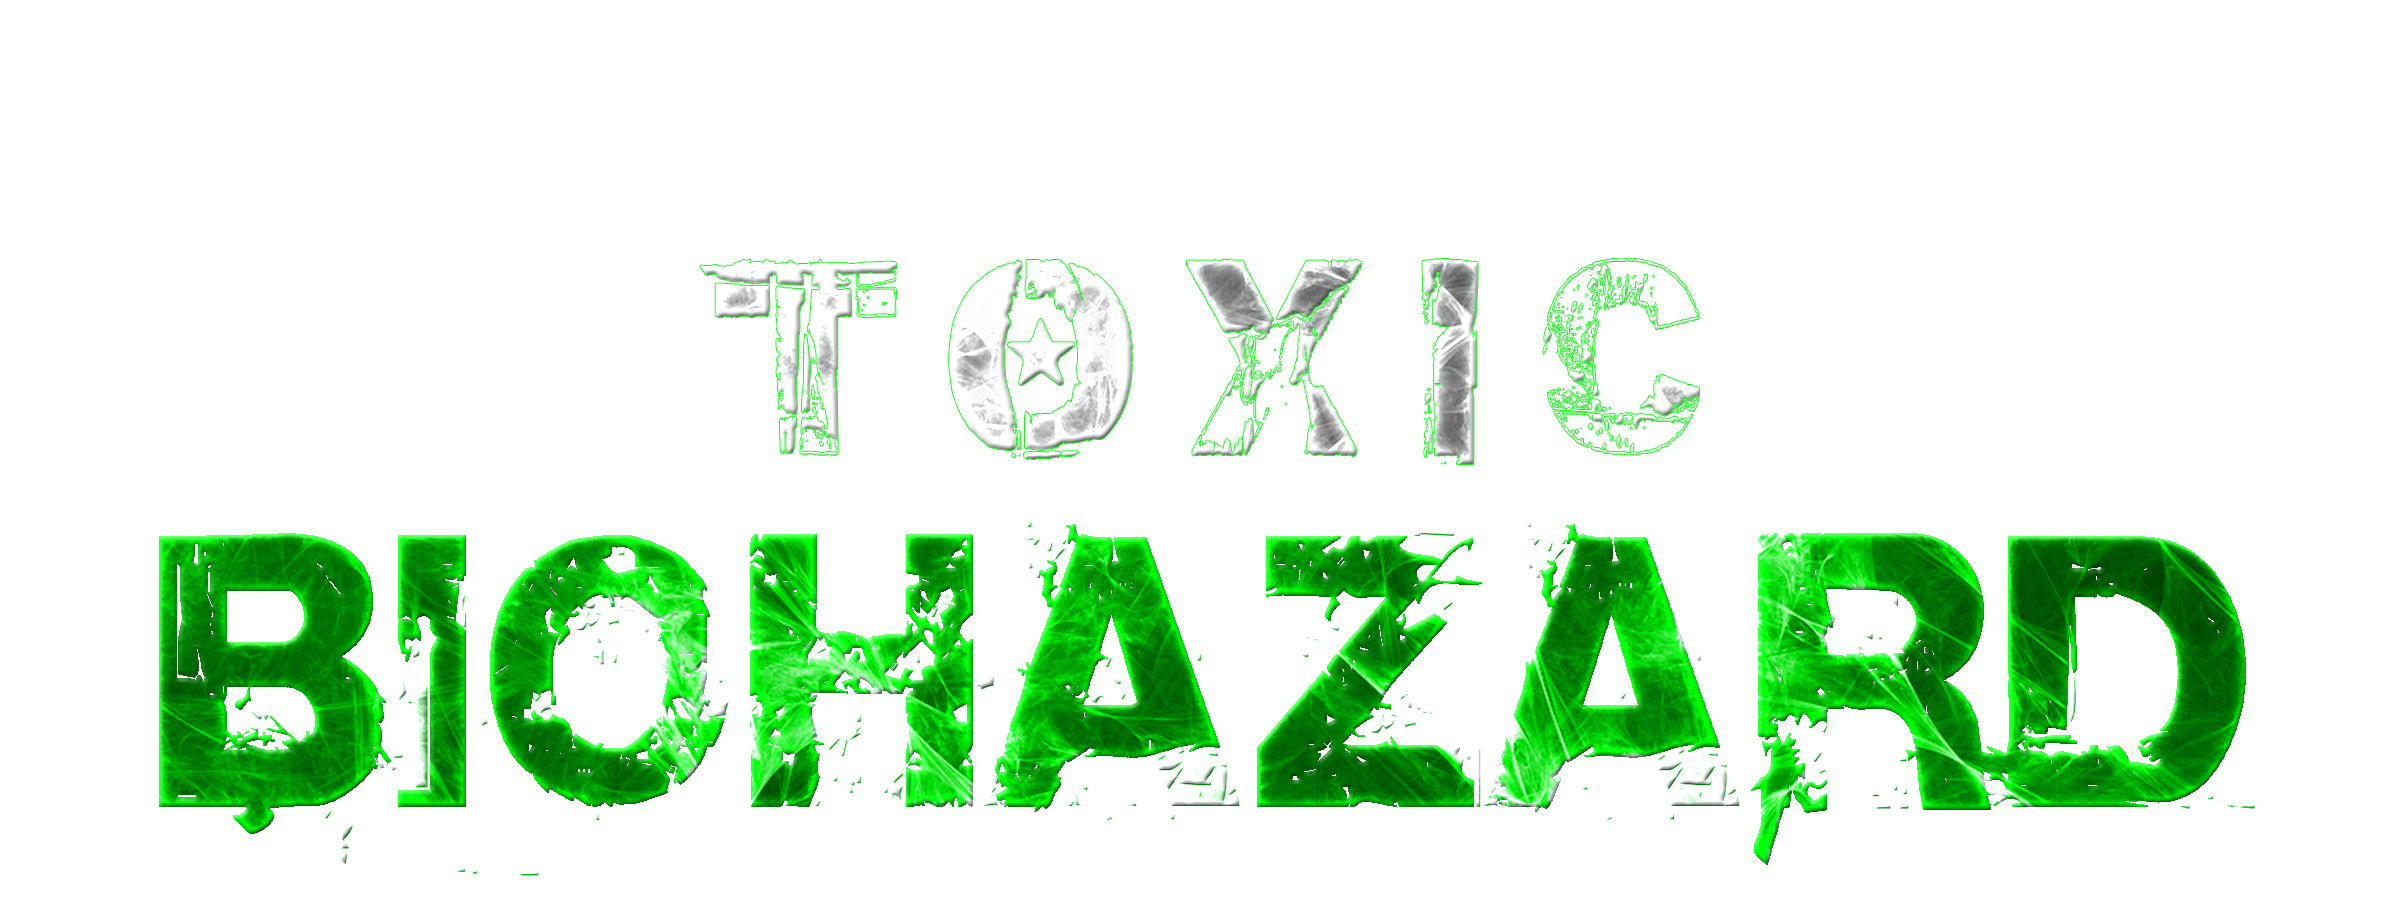 First edition limited x. Biohazard transparent toxic svg